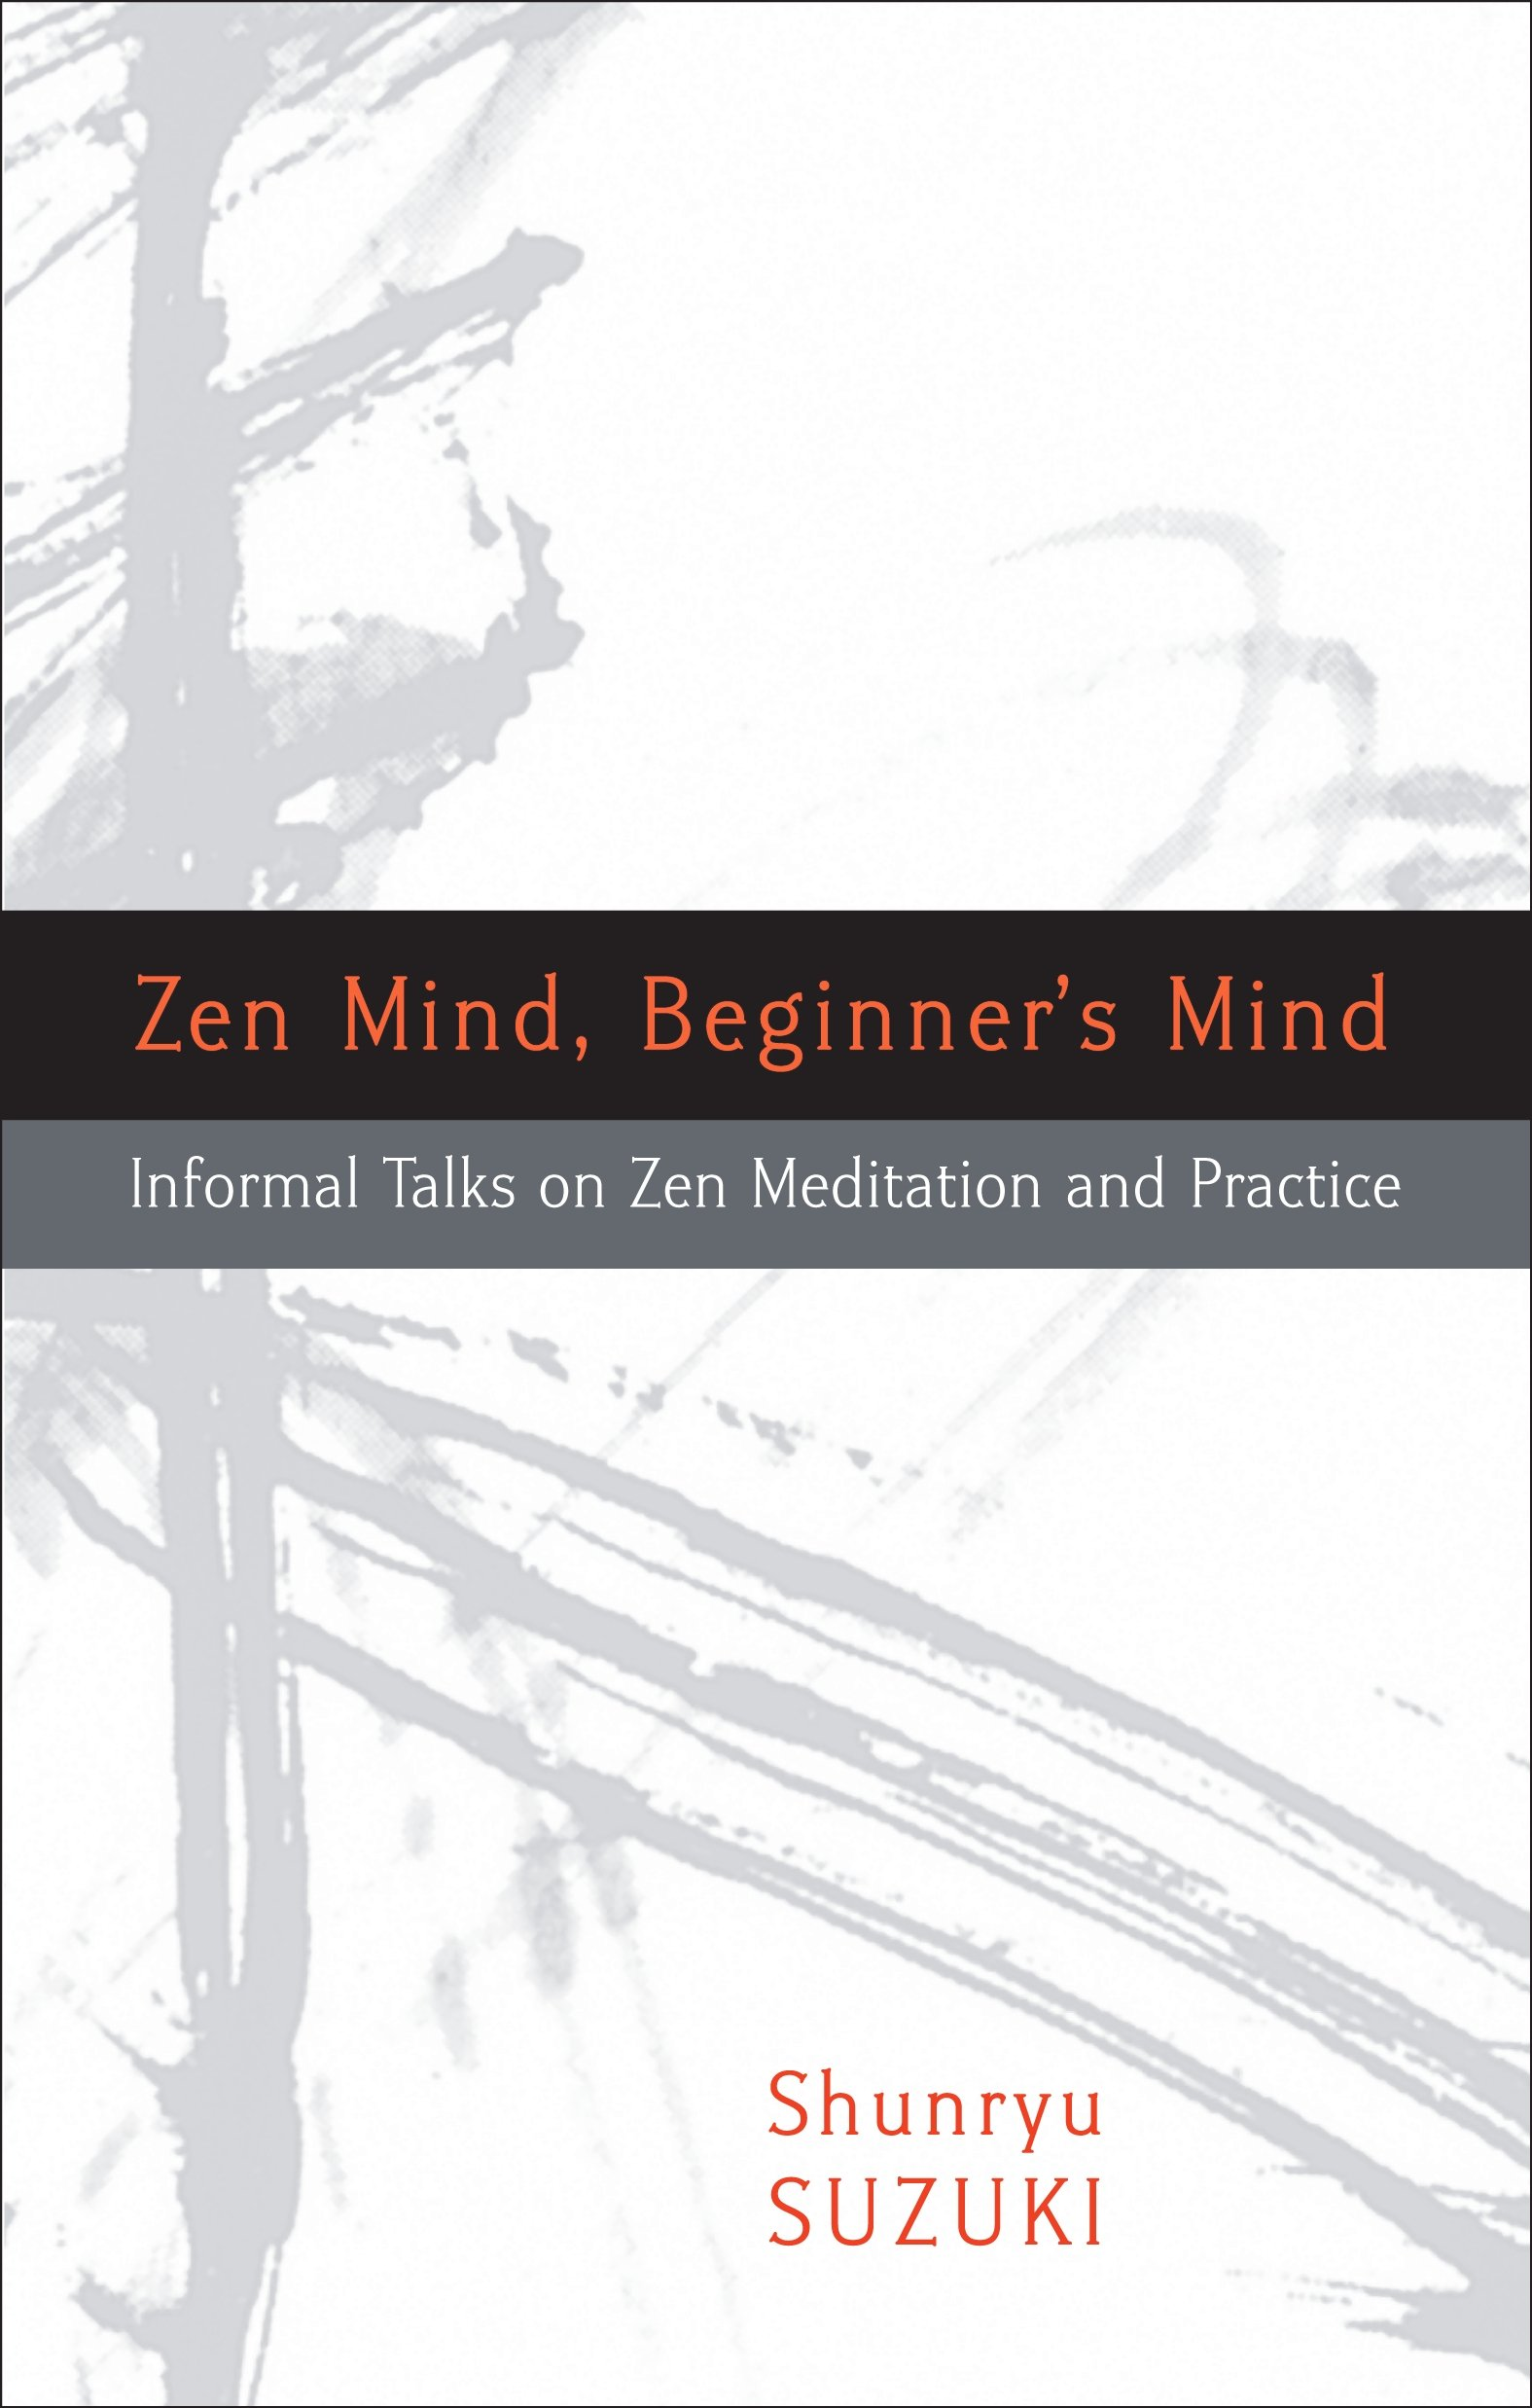 Suzuki Zen Mind Beginner's Mind cover art